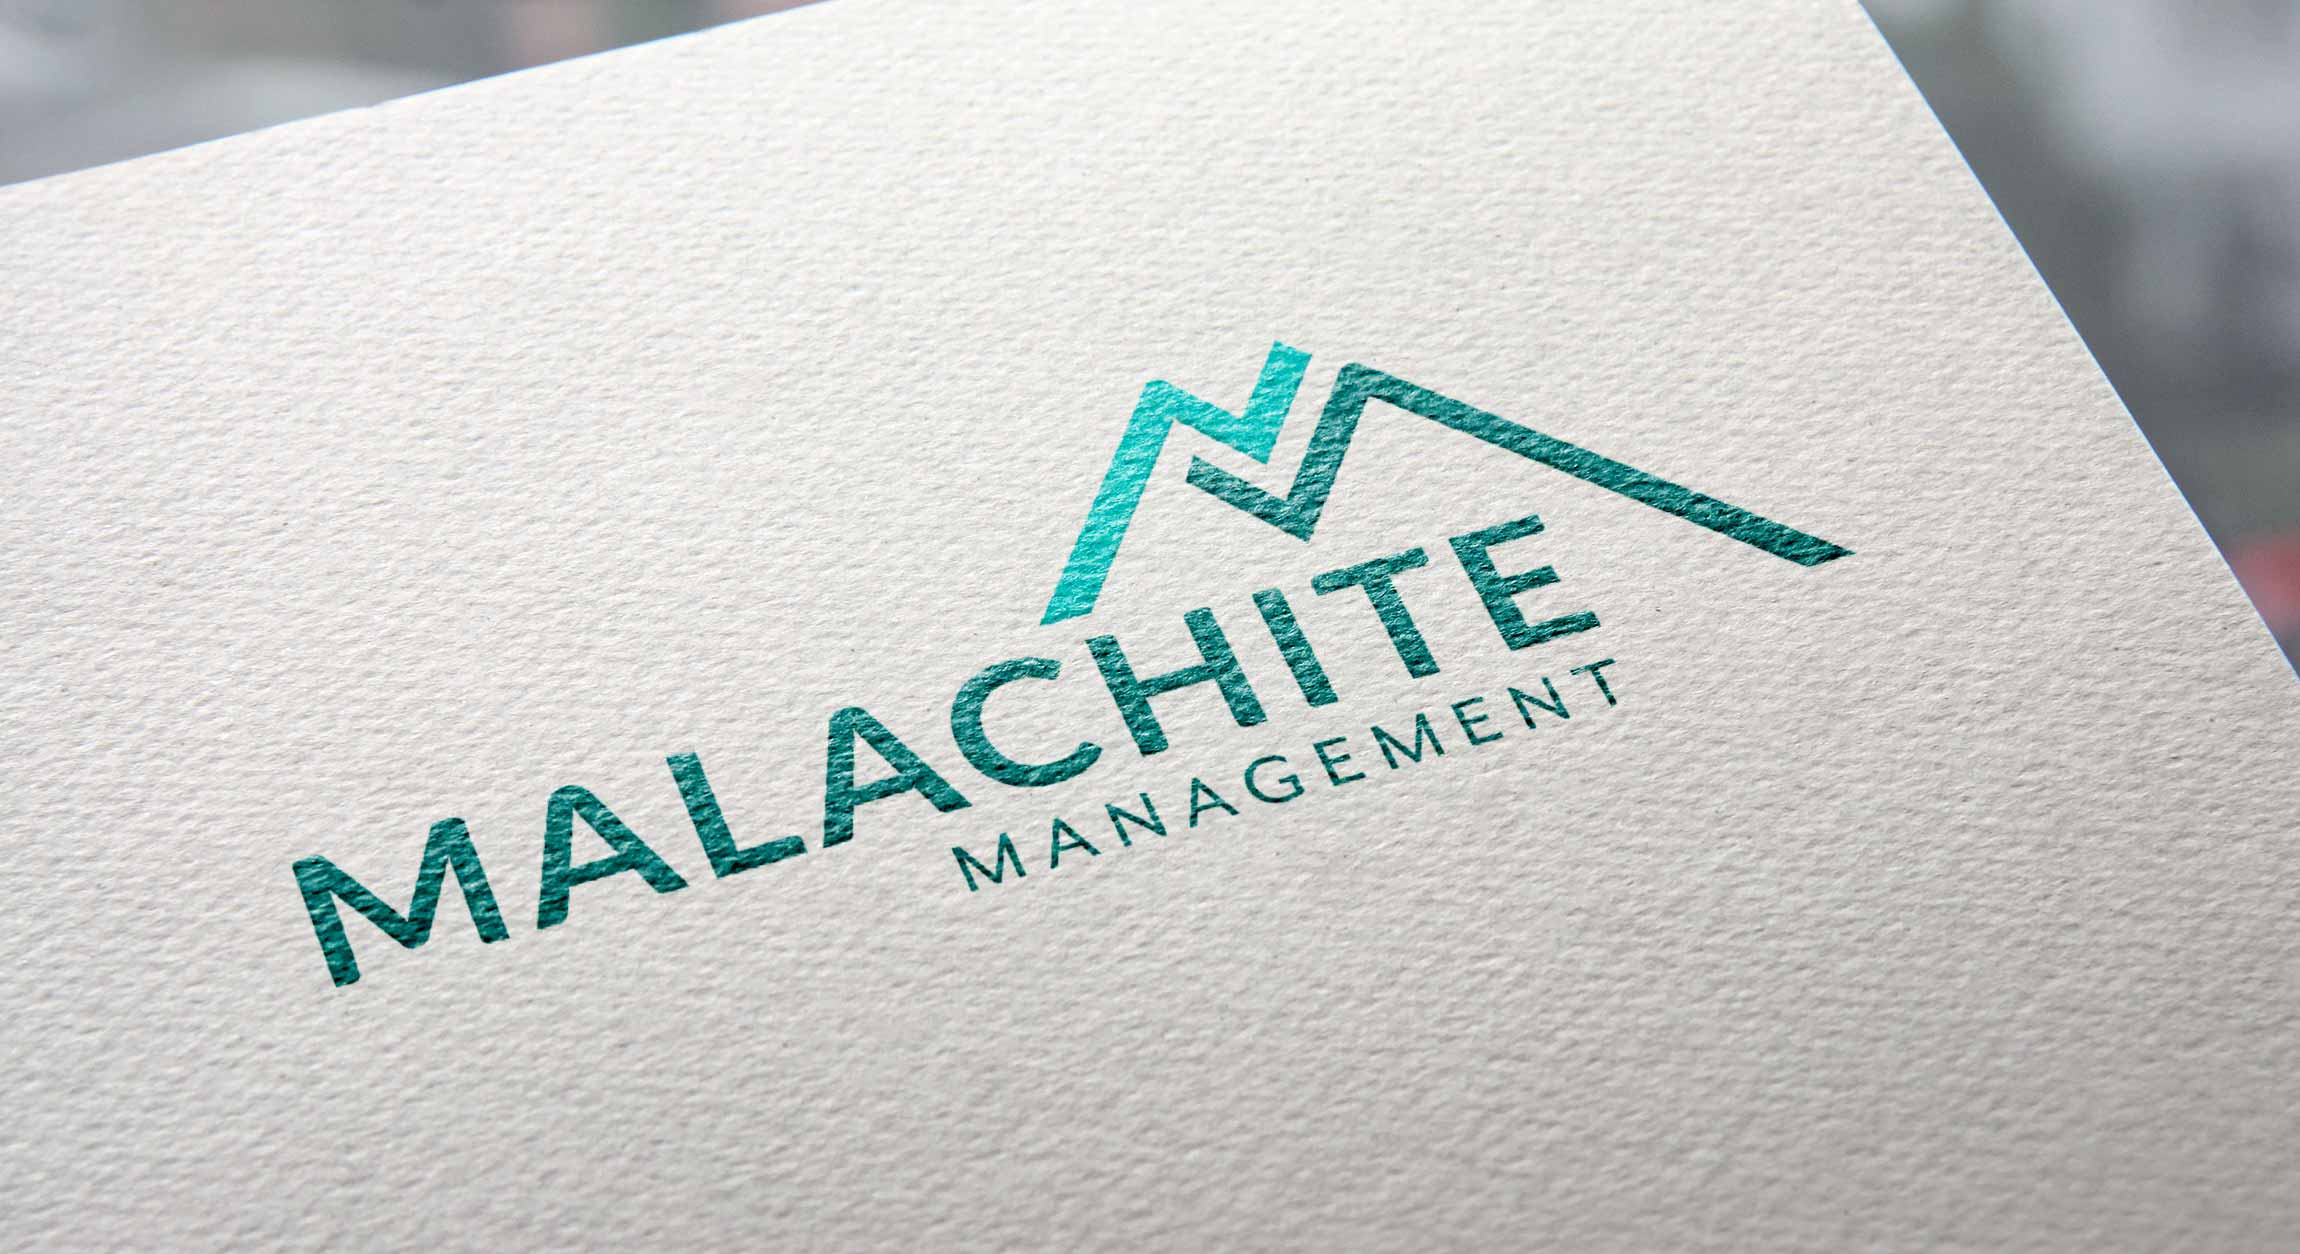 A refreshed brand for a refreshed client experience. View more of our recent work on Malachite Management's logo and website.